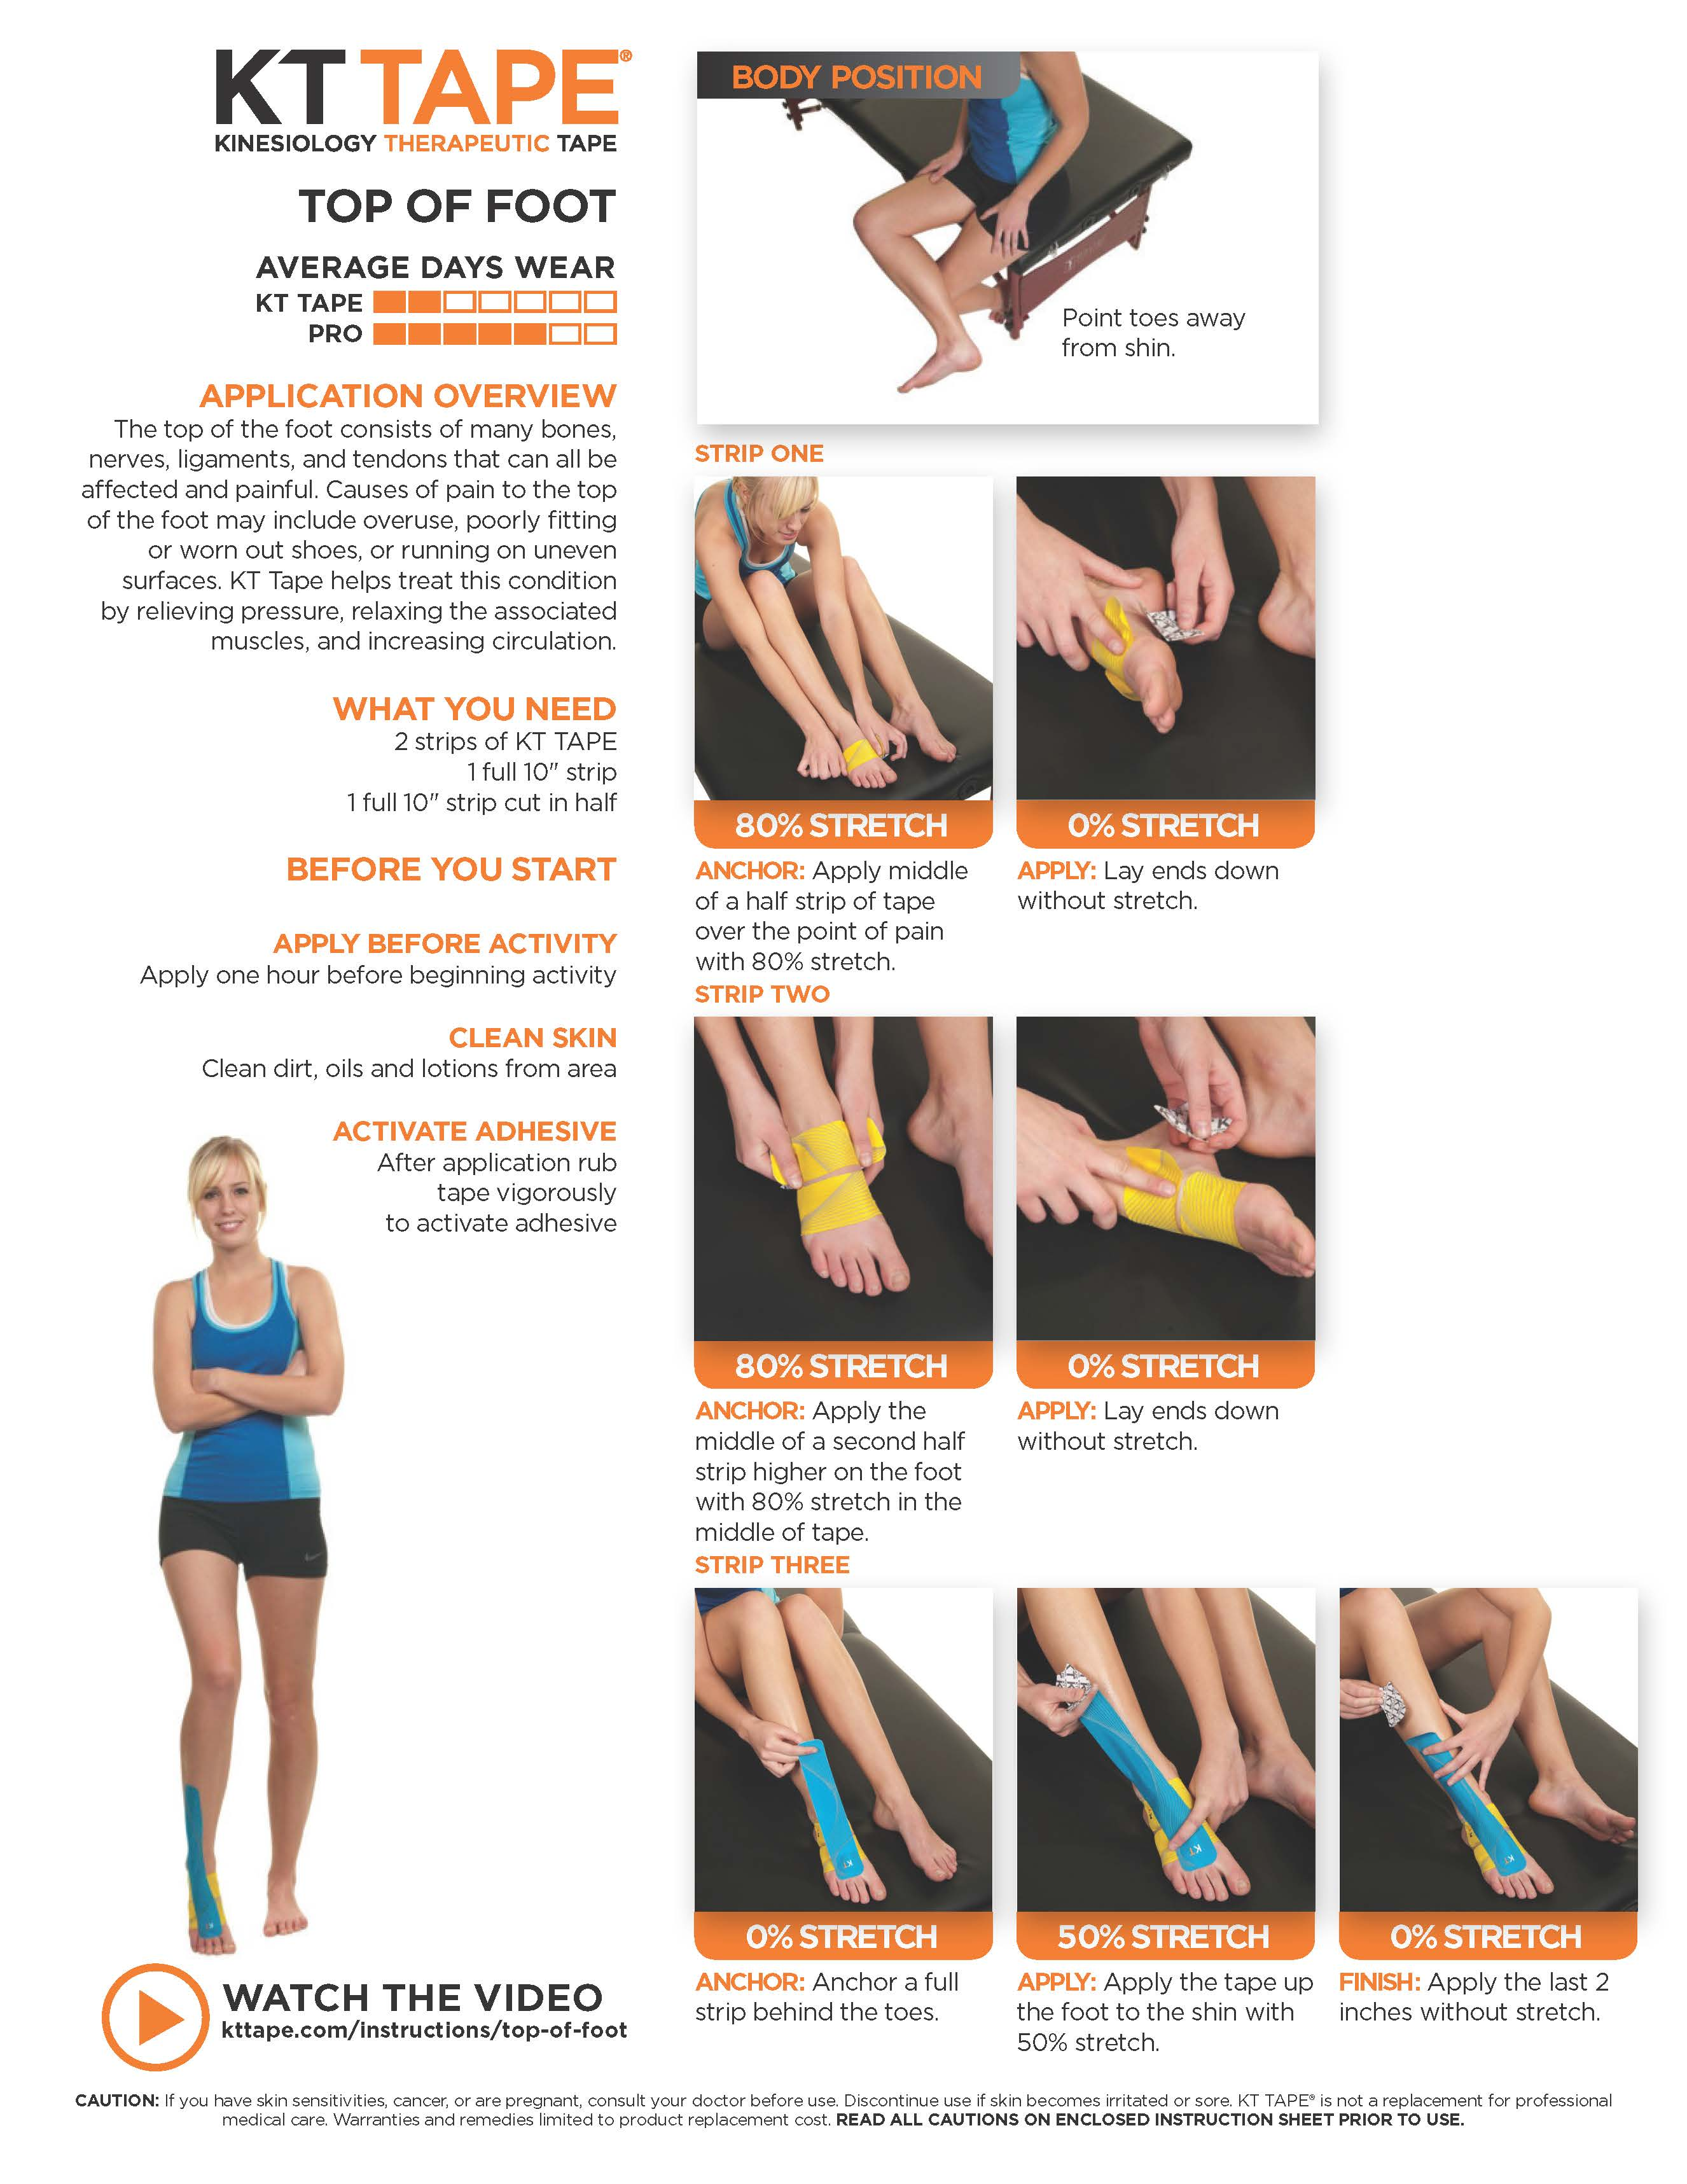 Top of Foot Pain – KT Tape